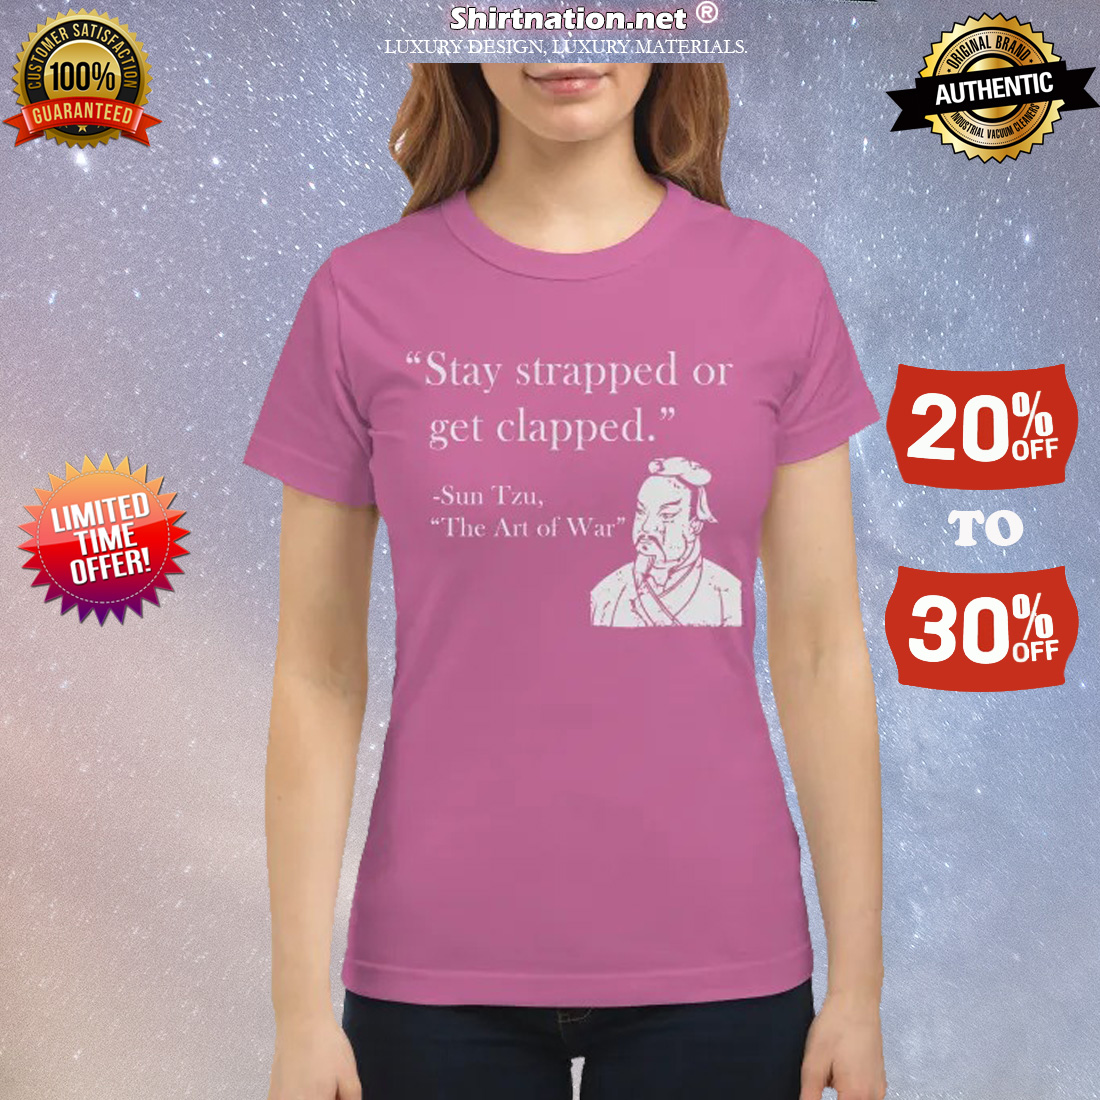 Stay trapped or get clapped Sun Tzu classic shirt